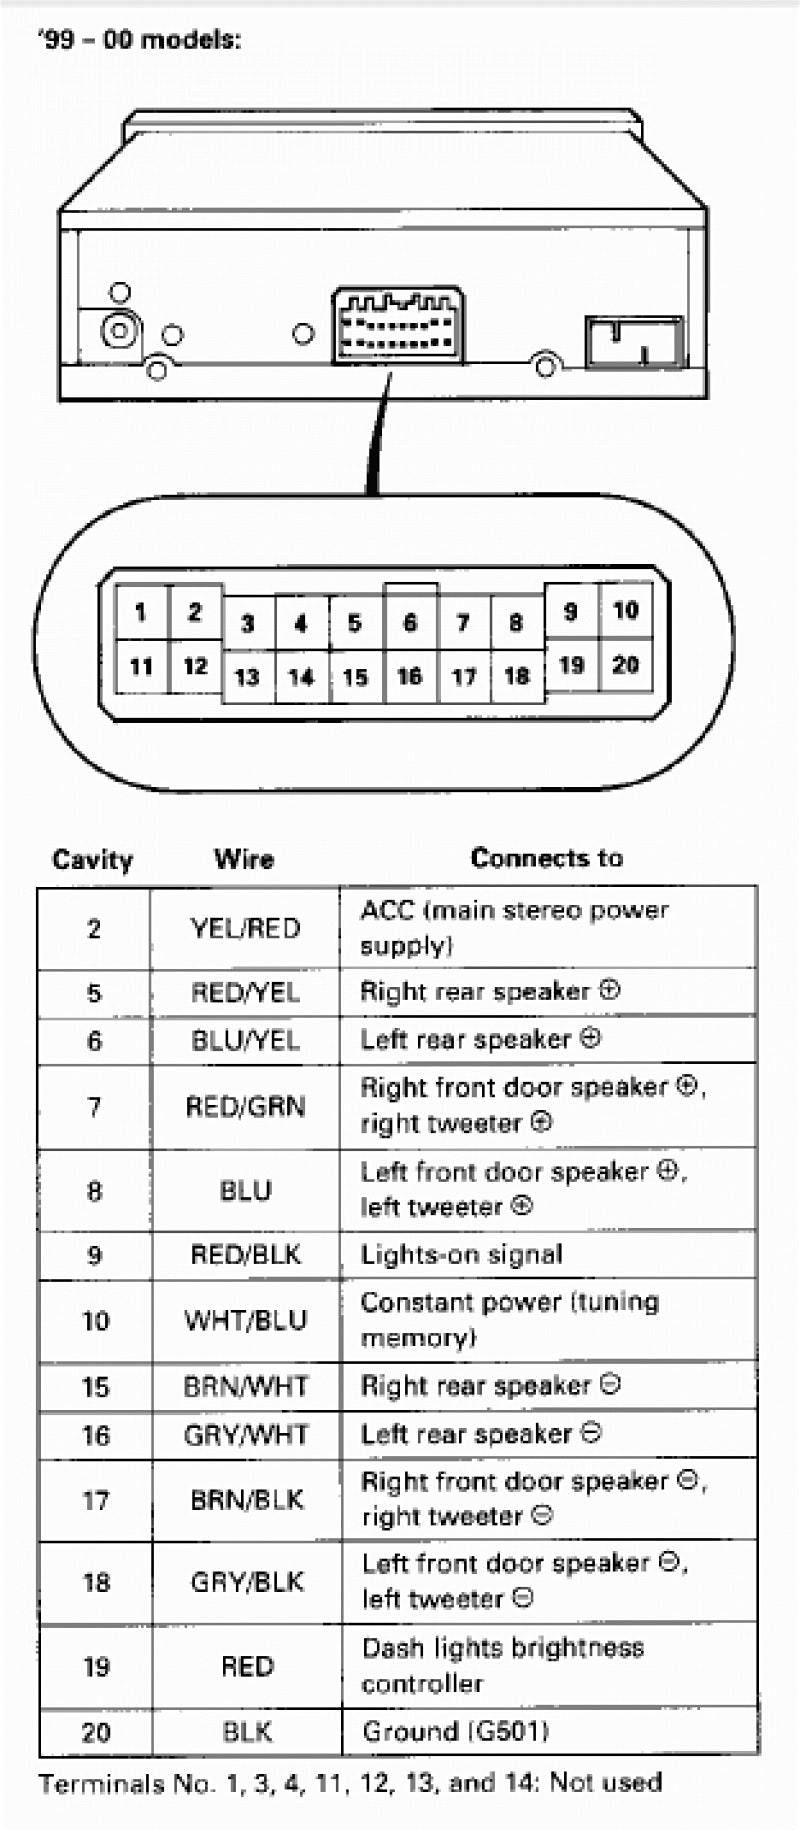 98 honda civic radio wiring diagram Download-1995 honda civic radio wiring diagram sevimliler and 4-t